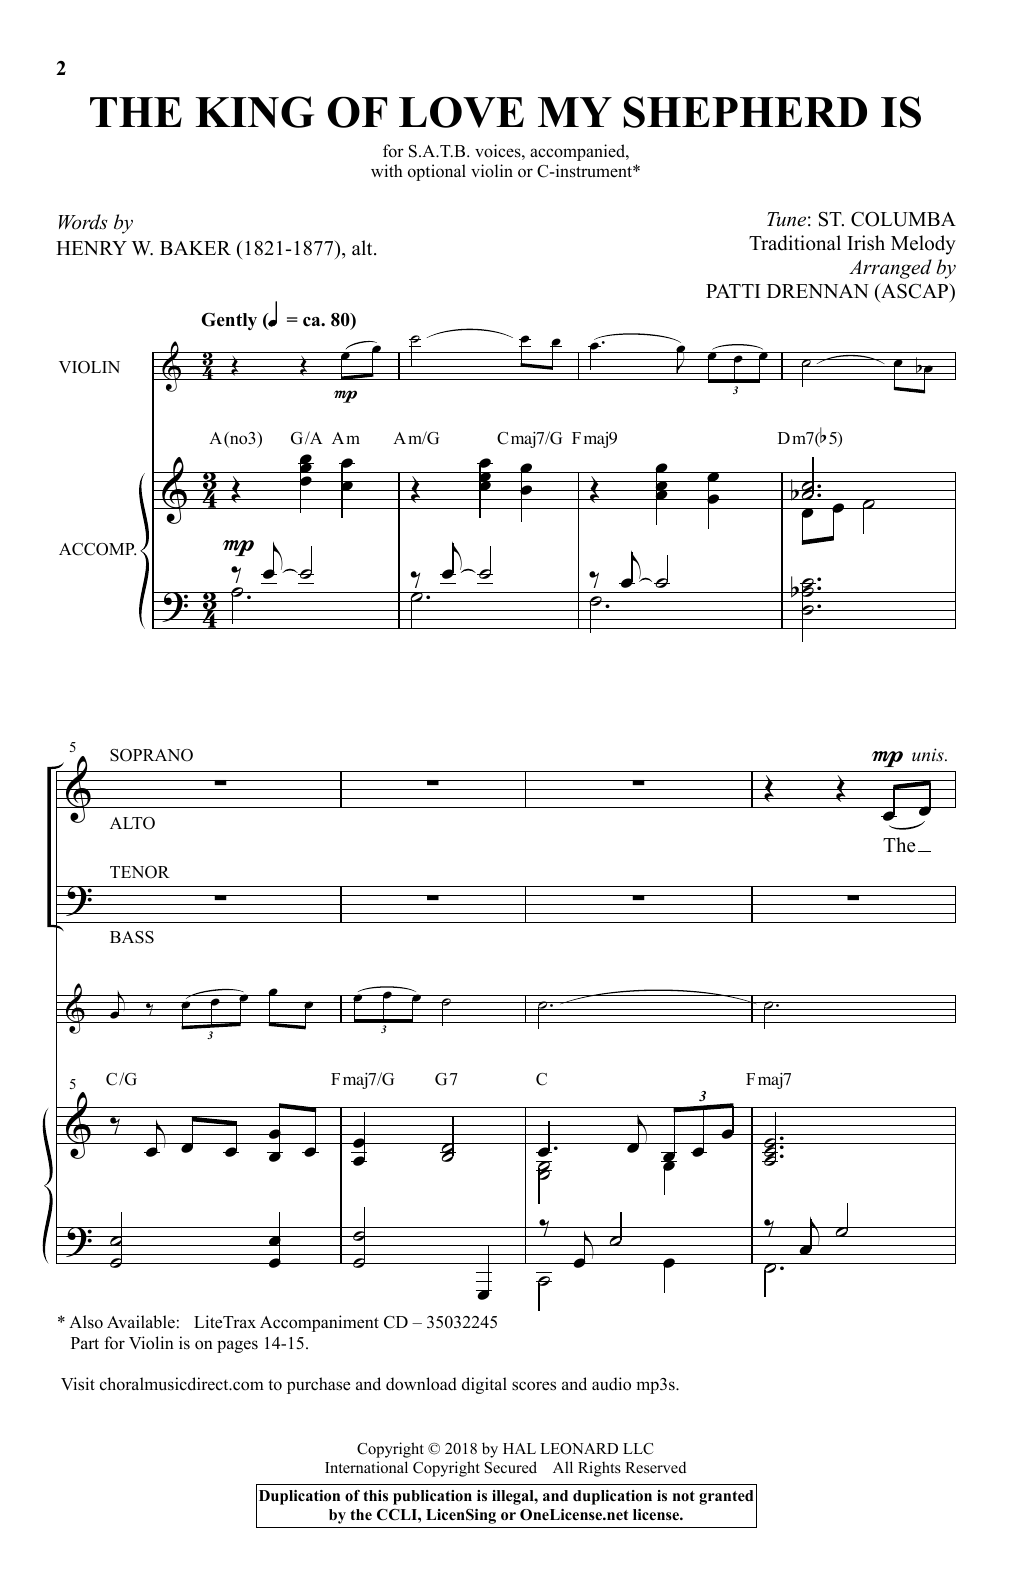 Henry W. Baker The King Of Love My Shepherd Is (arr. Patti Drennan) sheet music notes and chords. Download Printable PDF.